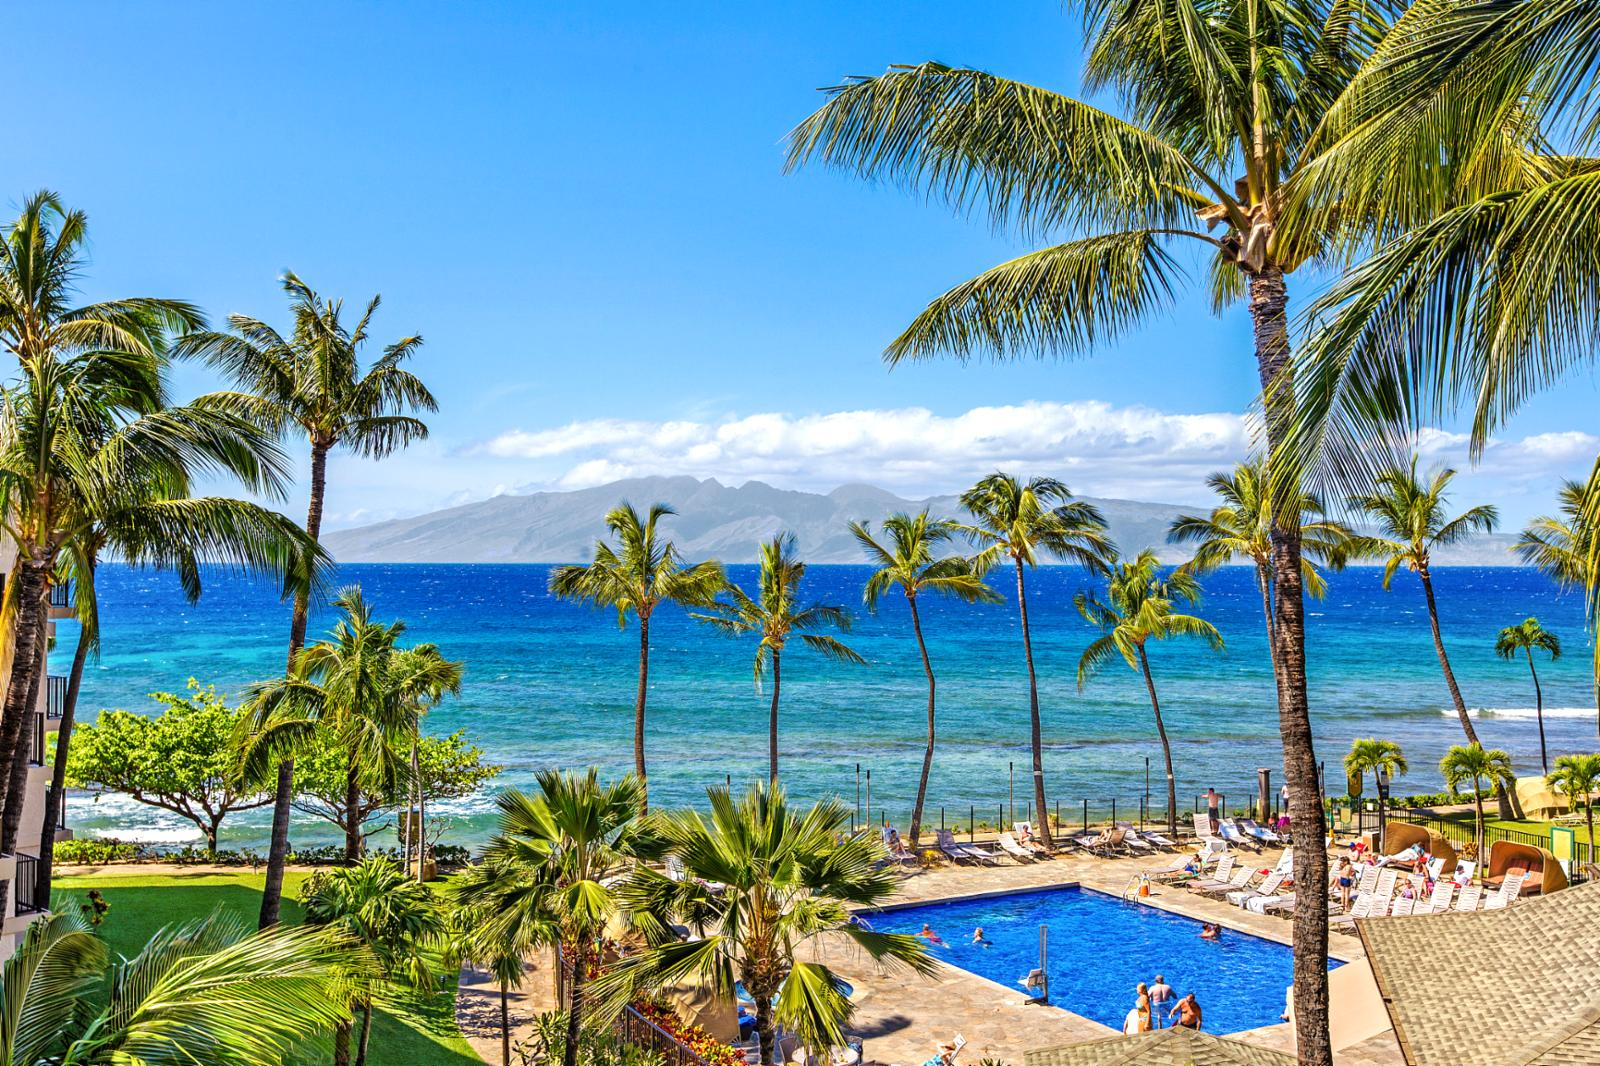 Welcome to Kaanapali Shores unit 455!